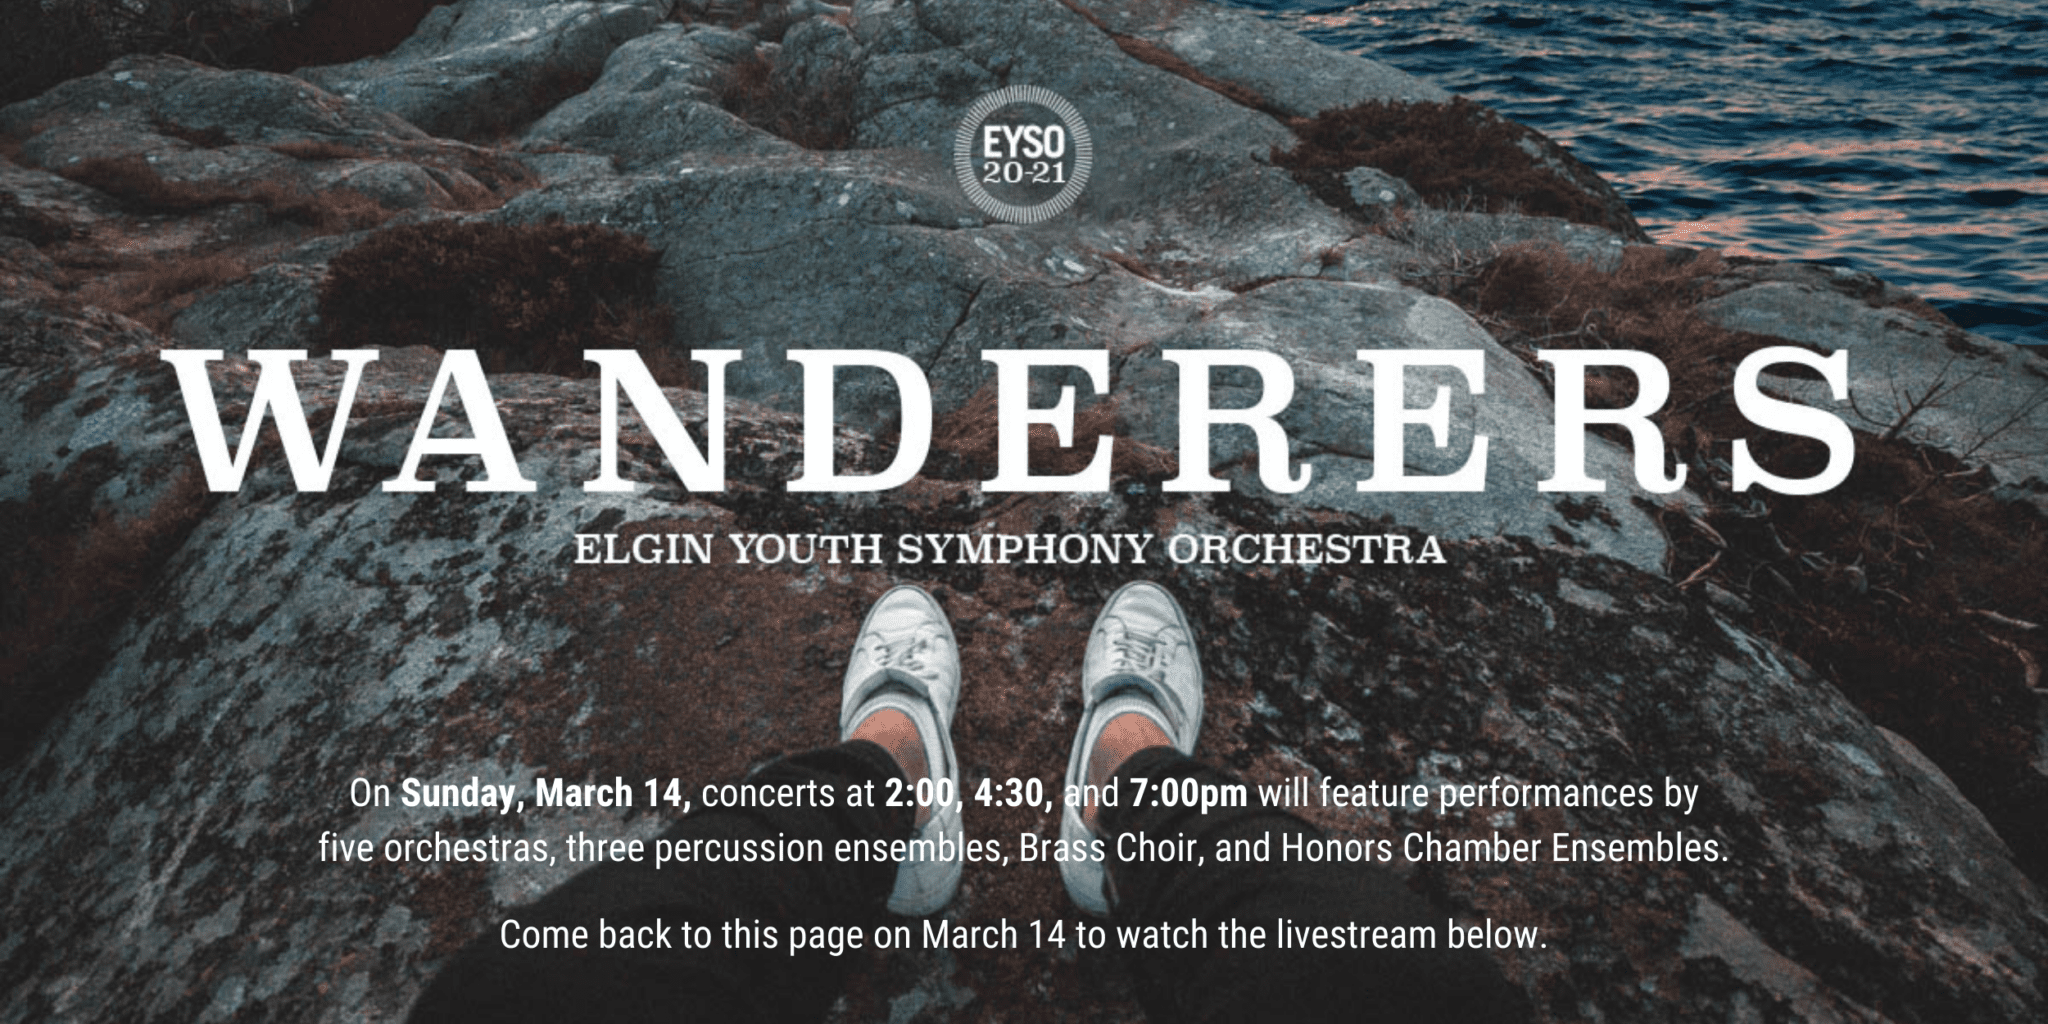 wanderers concert page banner FIVE orchestras